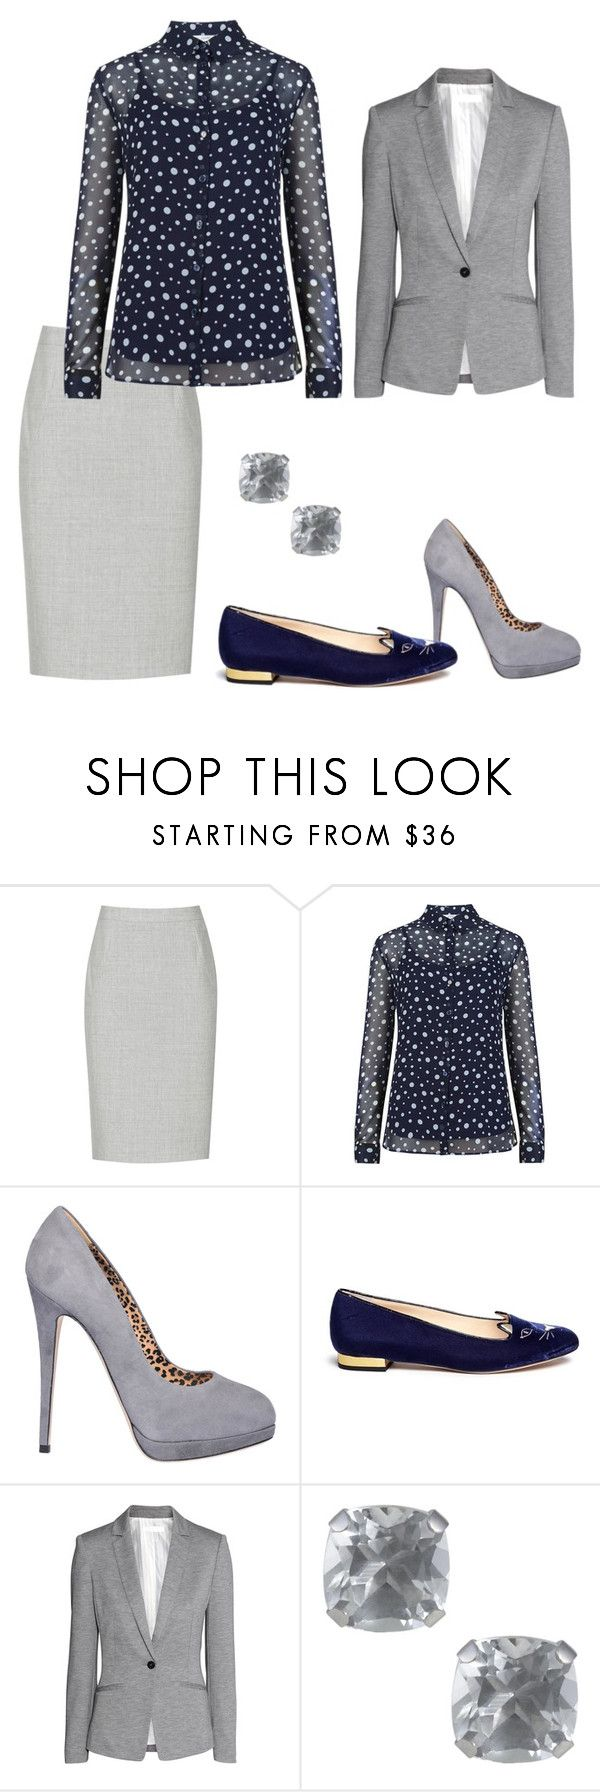 """""""bodkovane"""" by anjelik2127 on Polyvore featuring Reiss, Lerre, Charlotte Olympia, H&M, Jewel Exclusive, women's clothing, women's fashion, women, female and woman"""